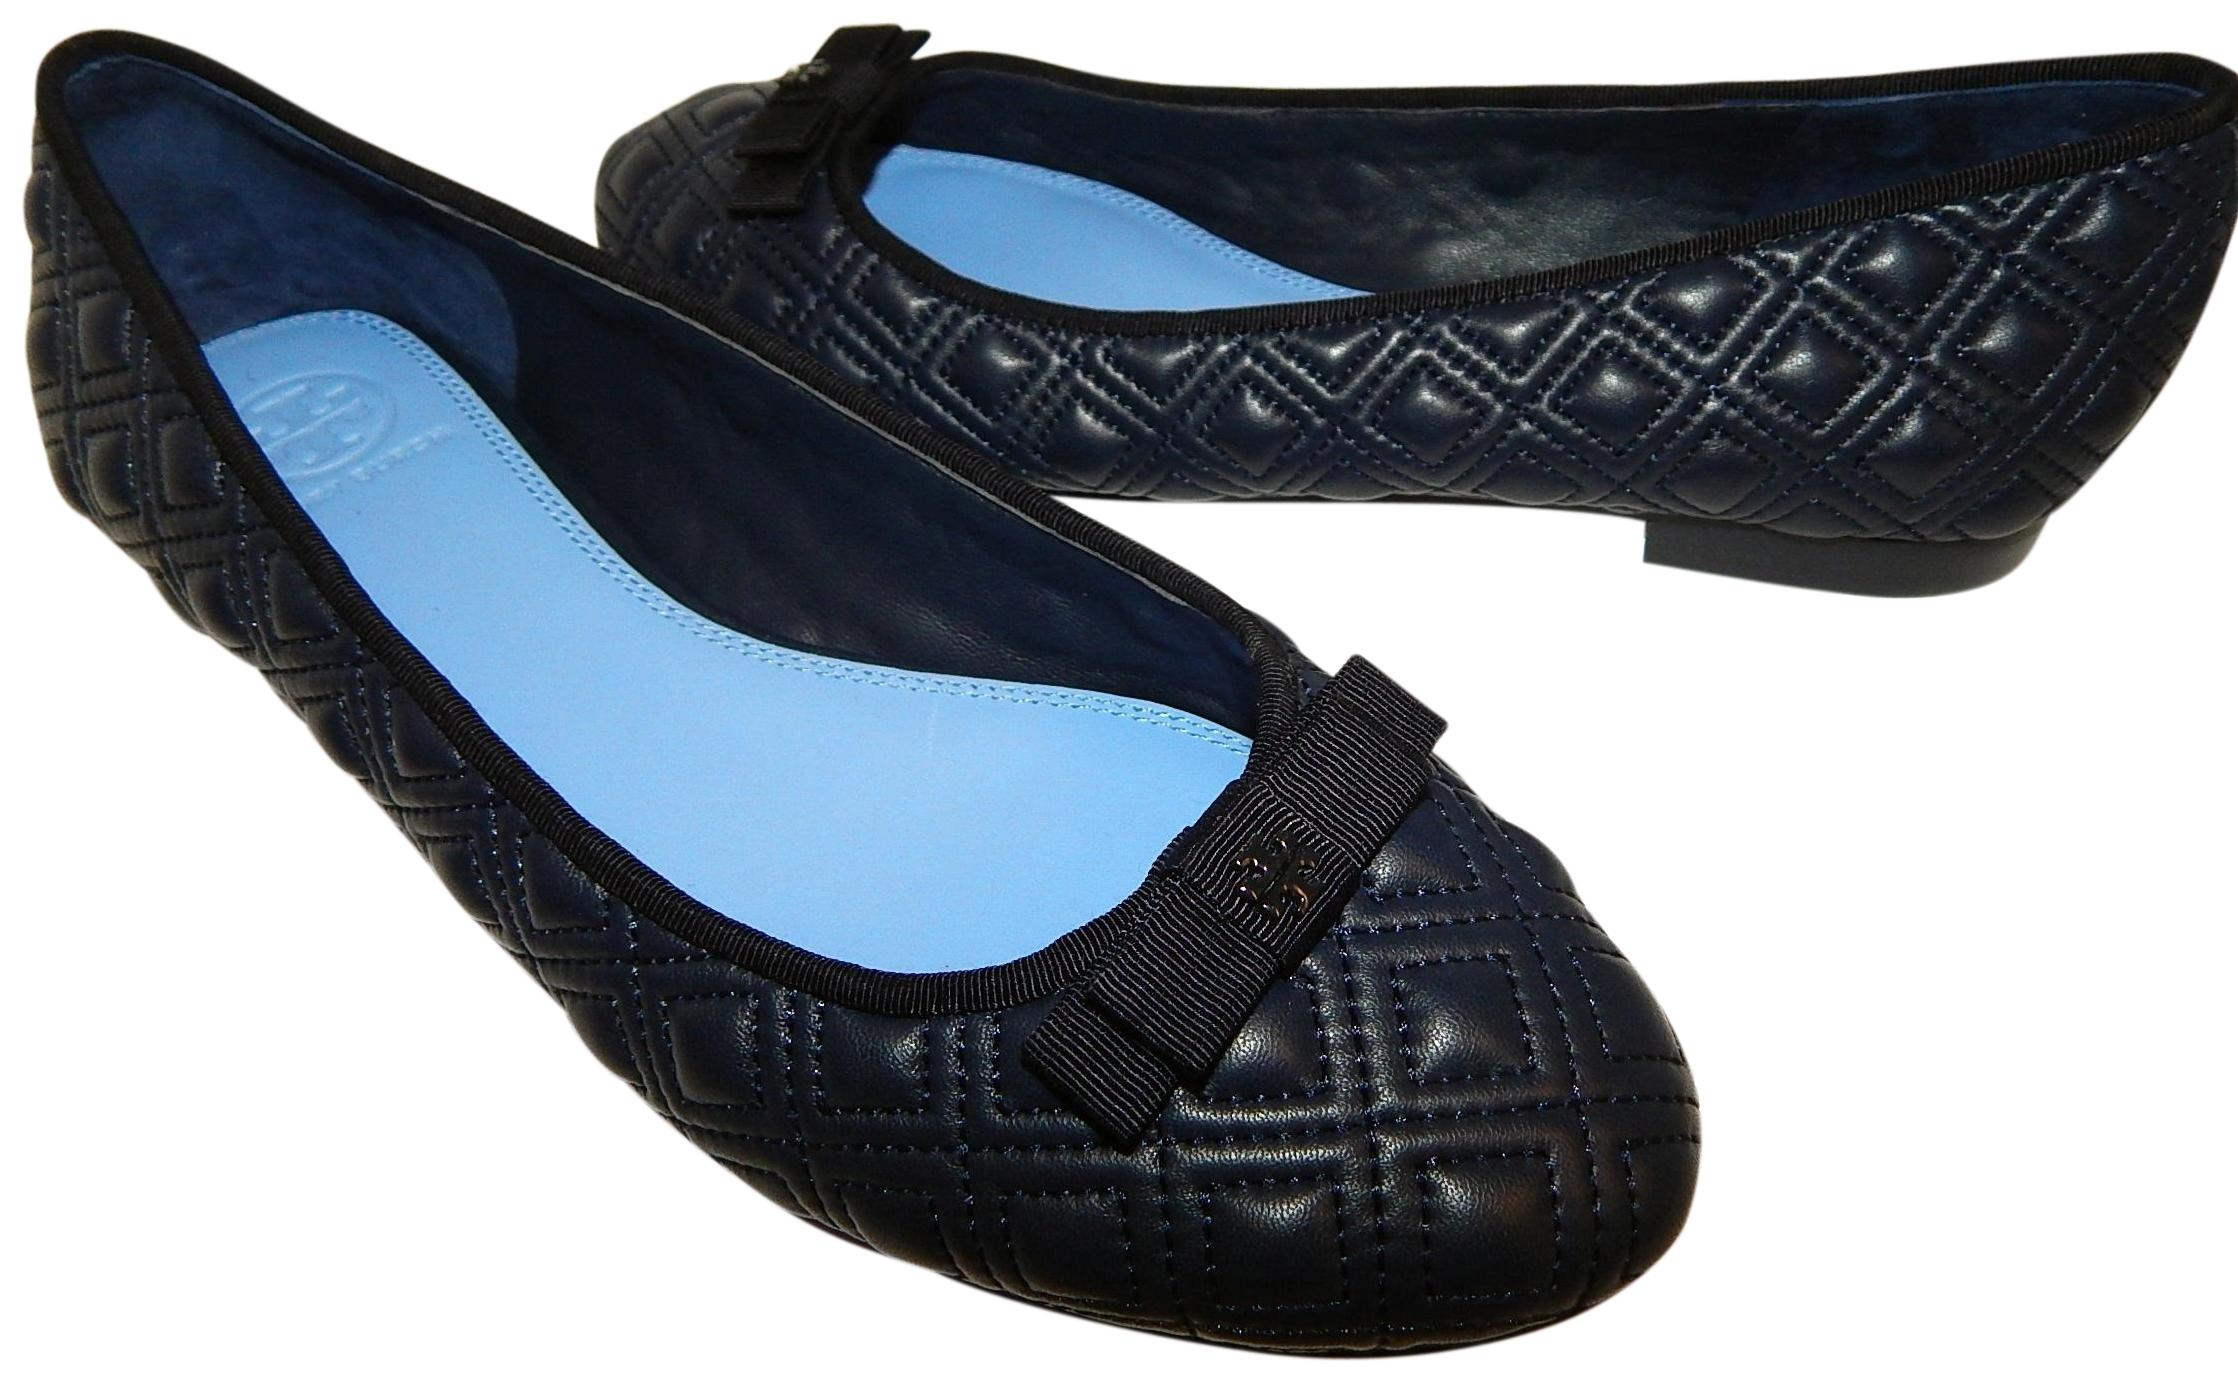 d4493c6a10bf4 ... real tory burch bryant ballet quilted navy blue flats 9f527 16ff6